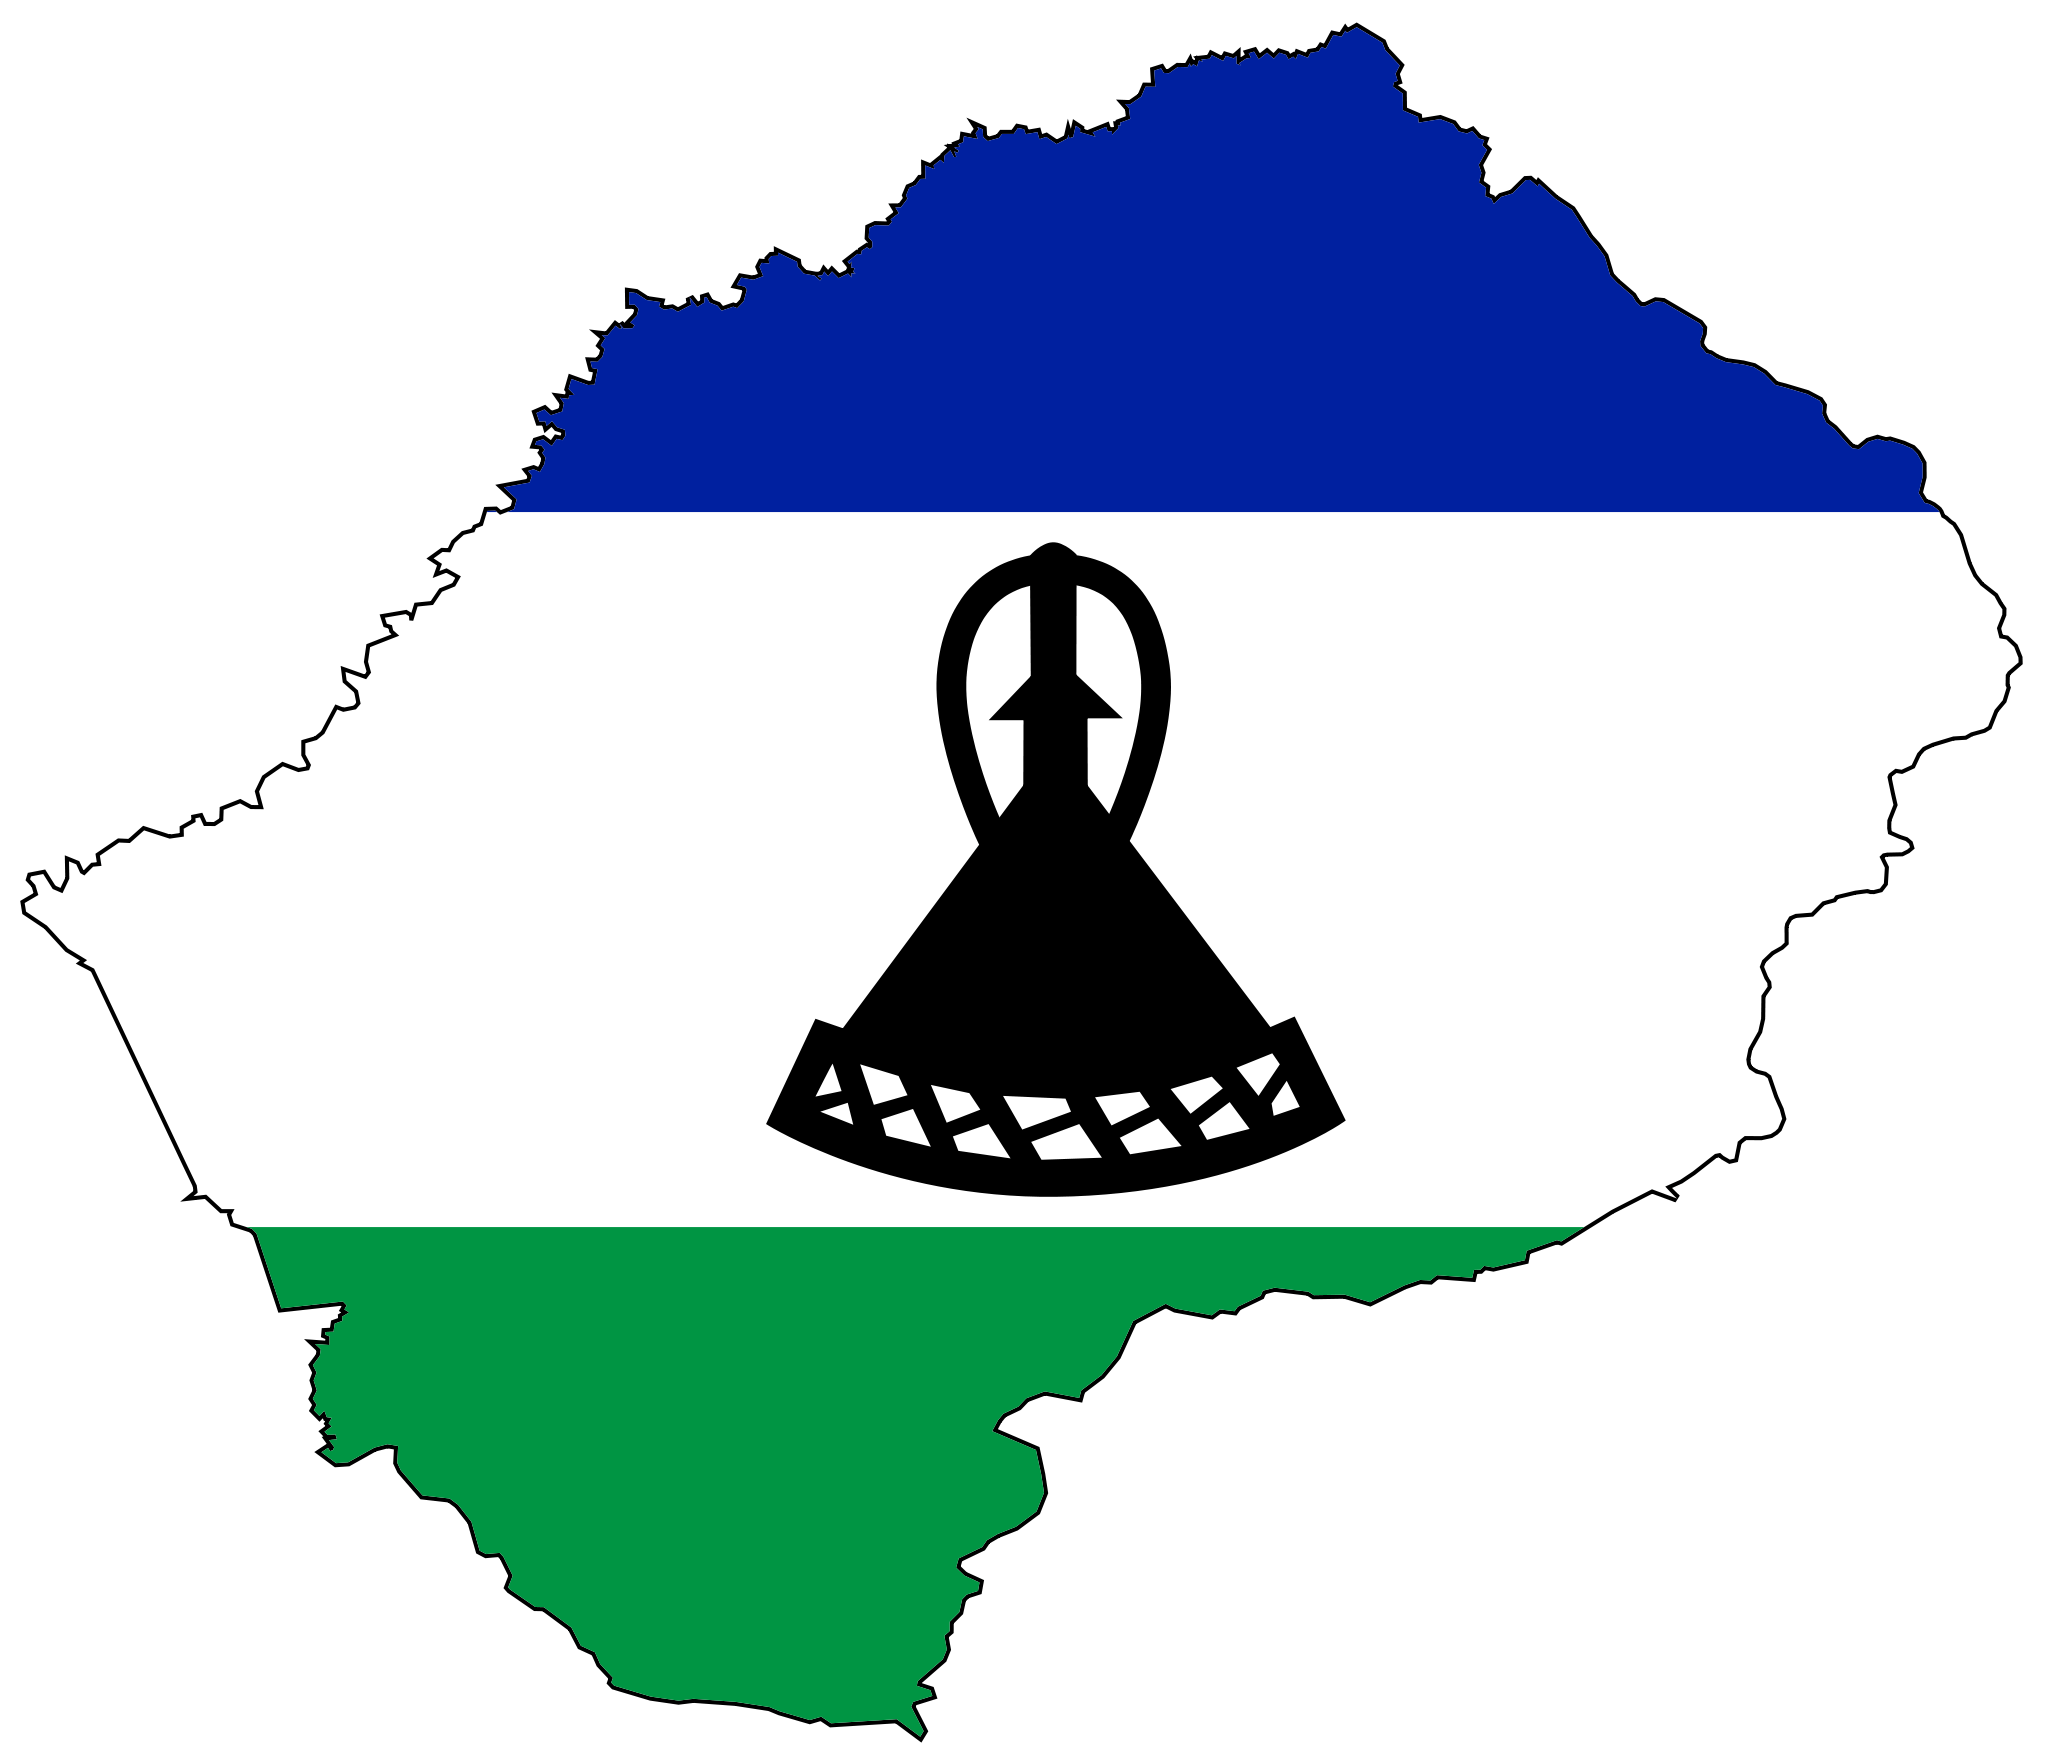 Lesotho flag map BelAfrique Your Personal Travel Planner www